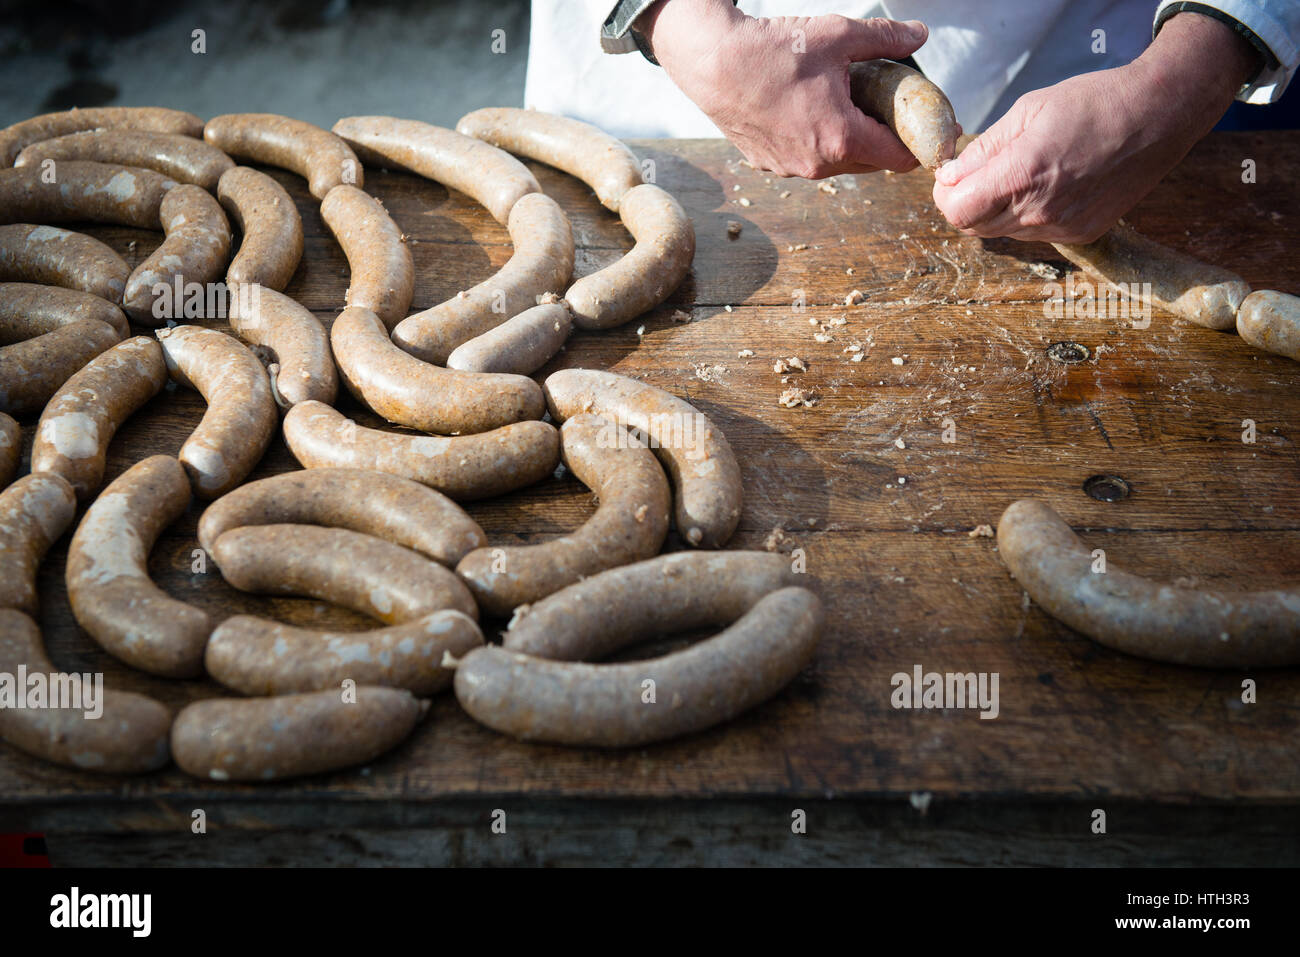 making of homemade sausages - Stock Image